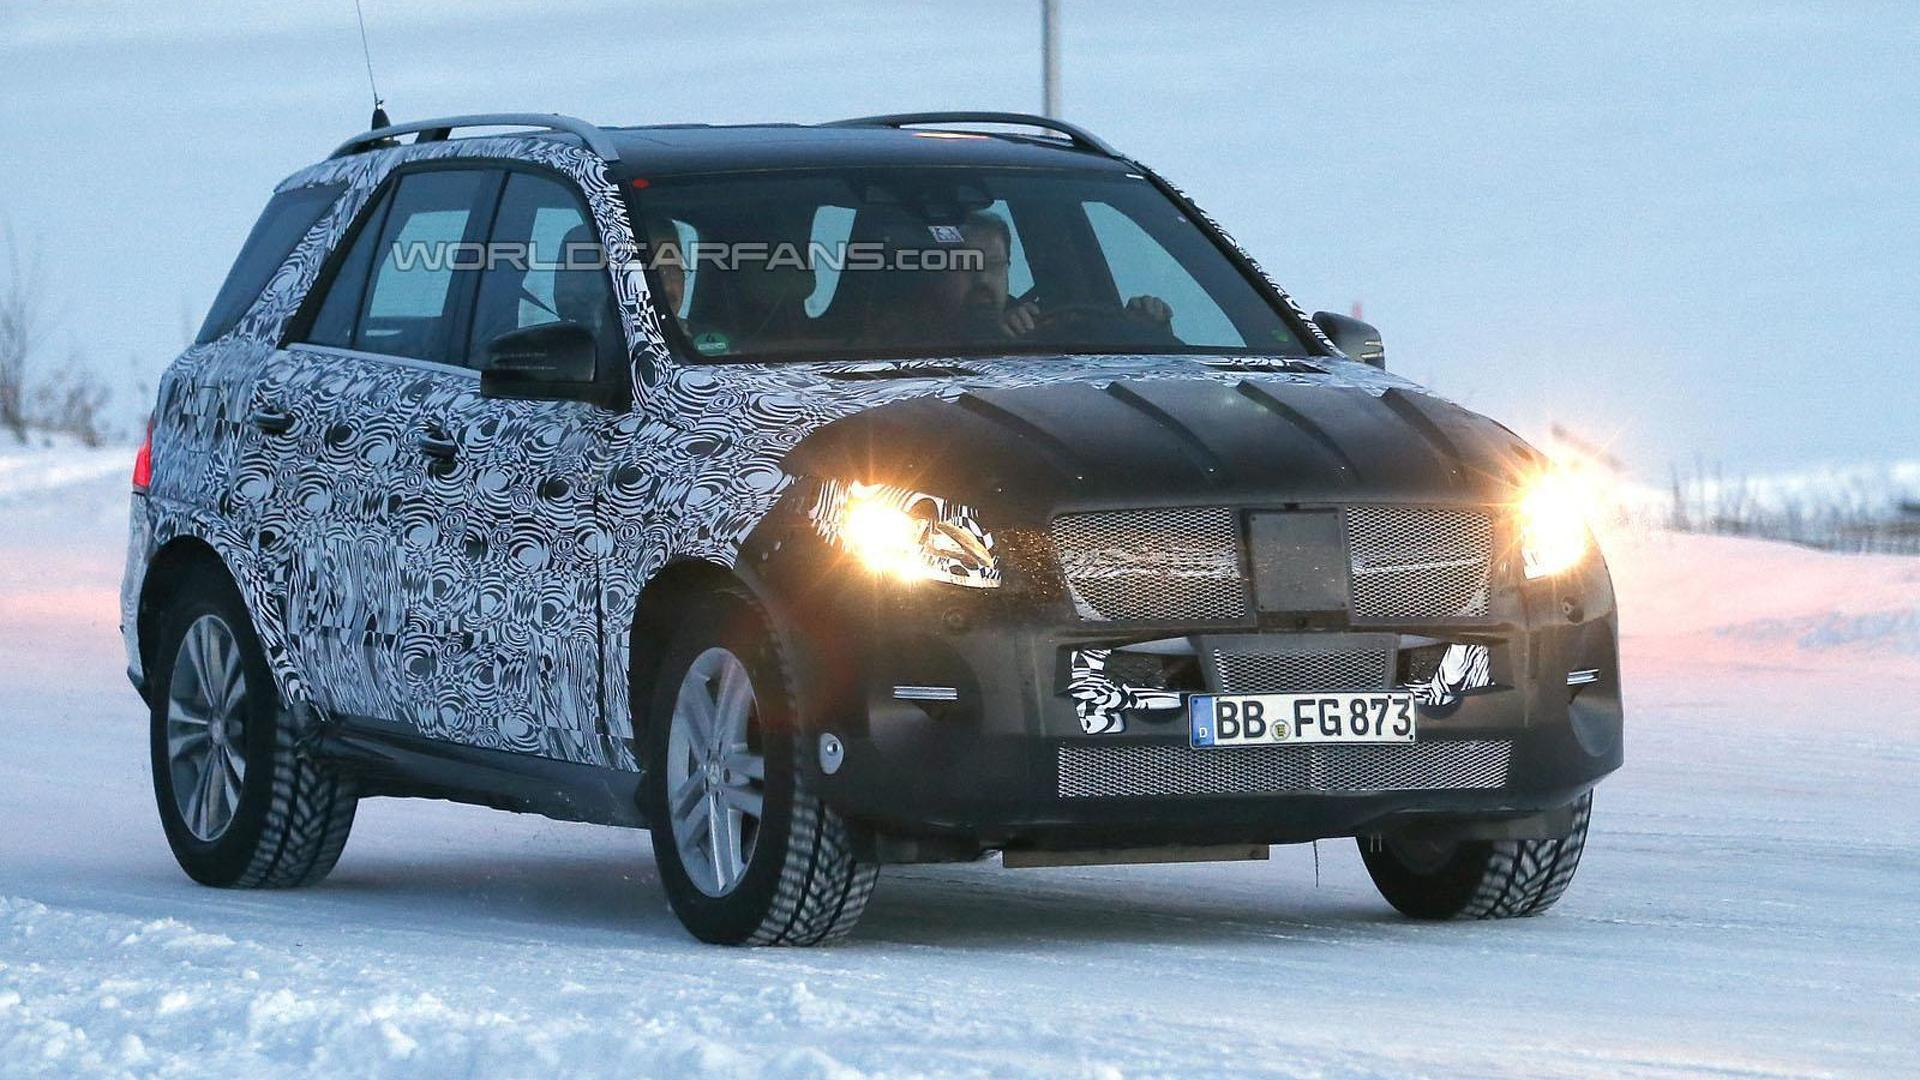 2015 / 2016 Mercedes M-Class facelift spied near the Arctic Circle